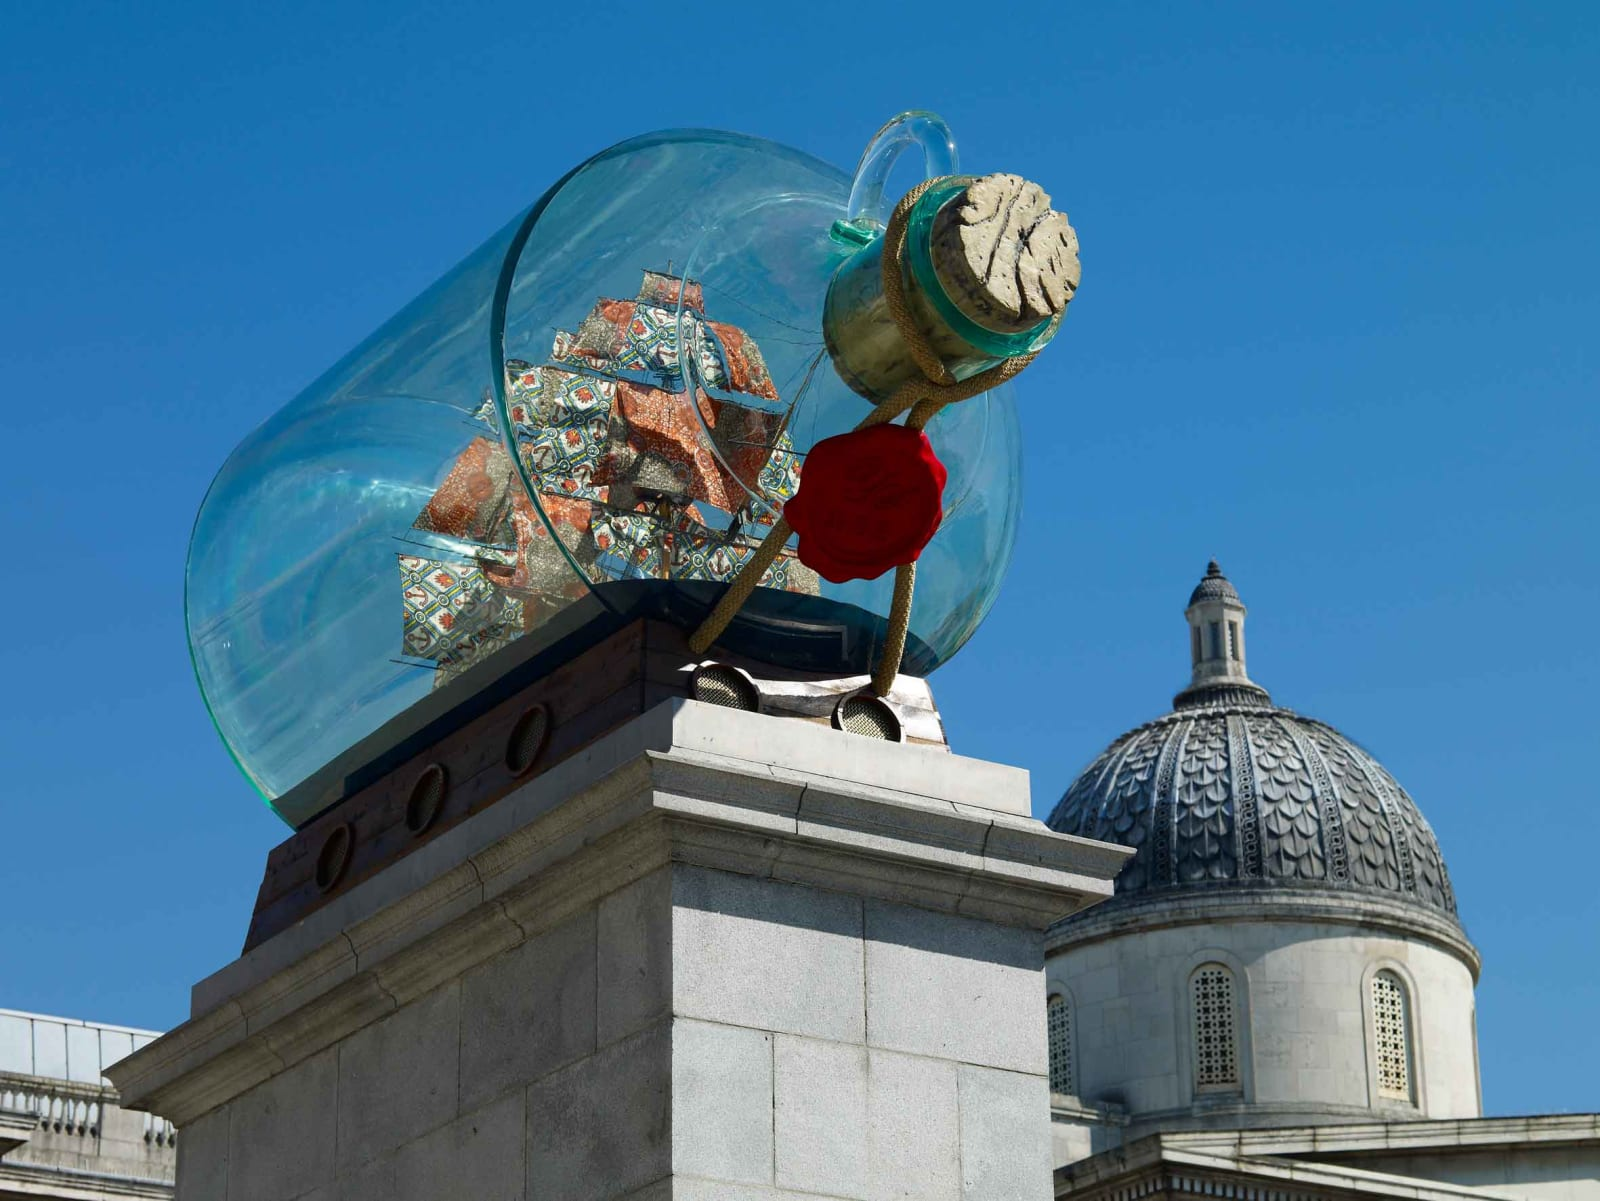 <p>Installation view:<i> </i><i>Nelson's Ship in a Bottle</i>, Fourth Plinth Commission, Trafalgar Square, London (2010-2012).</p>